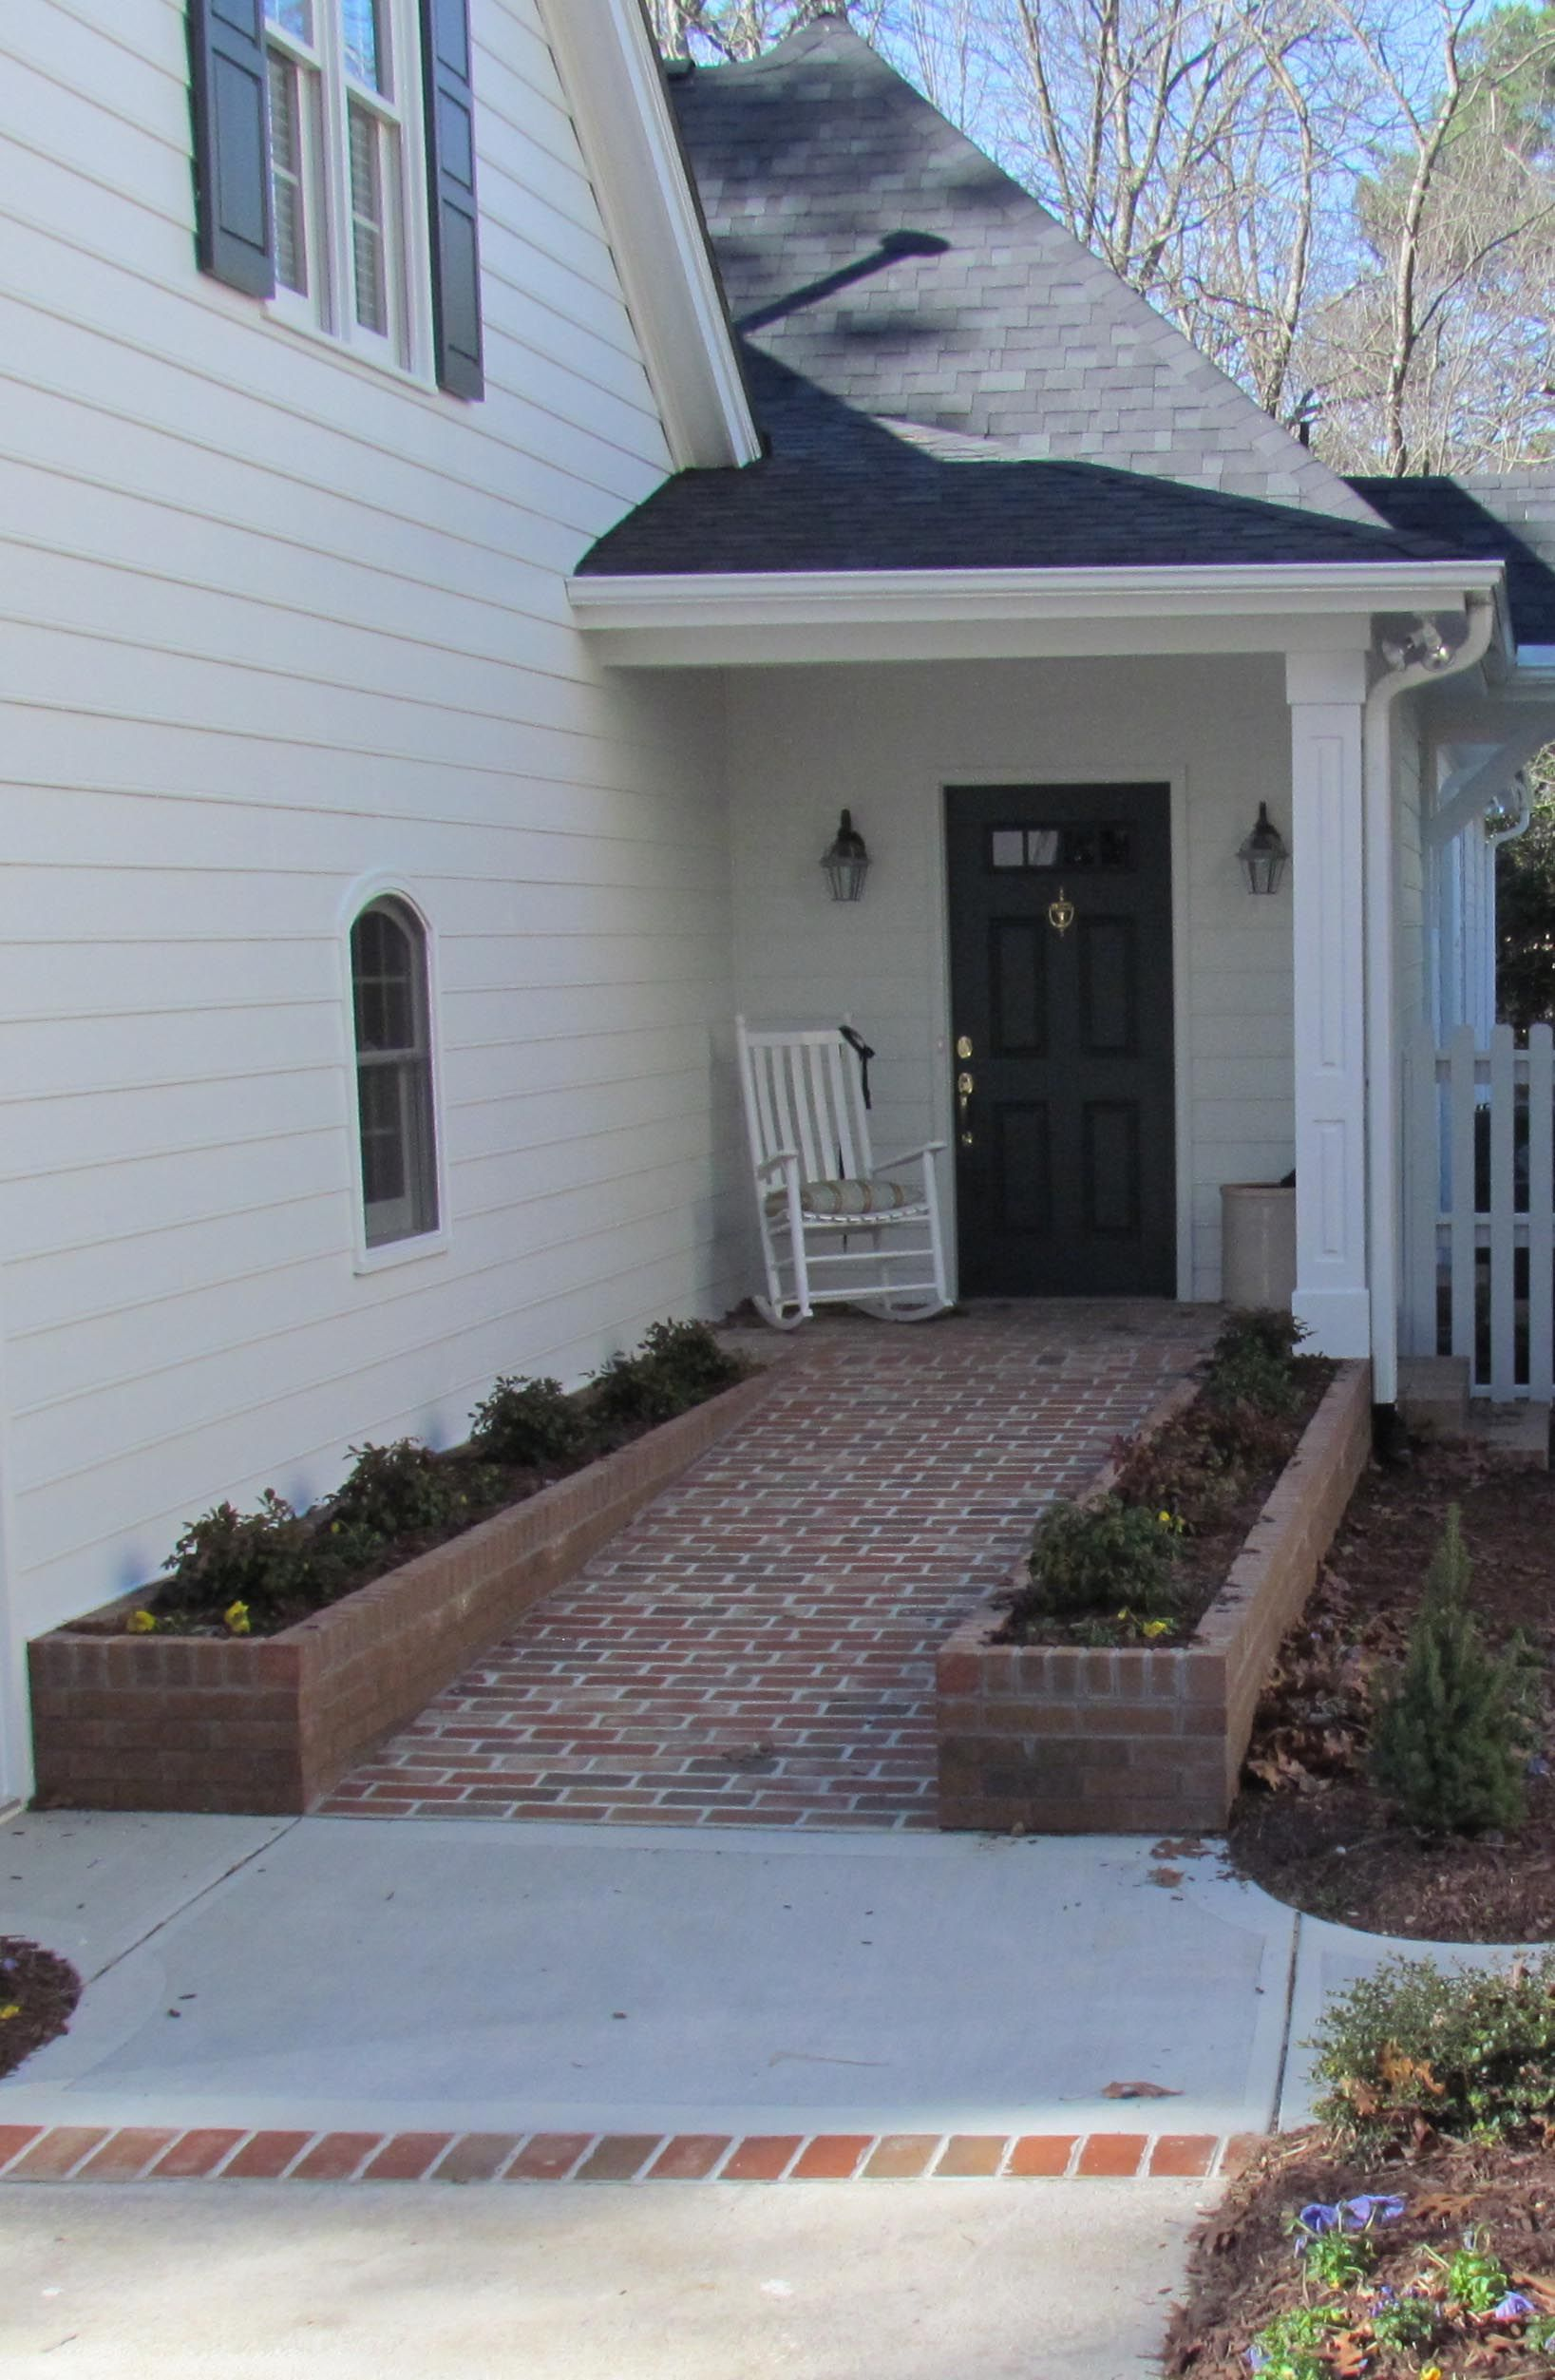 ADA Accessible and still pretty  Vaughan Building   Remodeling created this  front entry with ramp using brick pavers that were recycled from the old  patio. Vaughan Building   Remodeling created this front entry with ramp